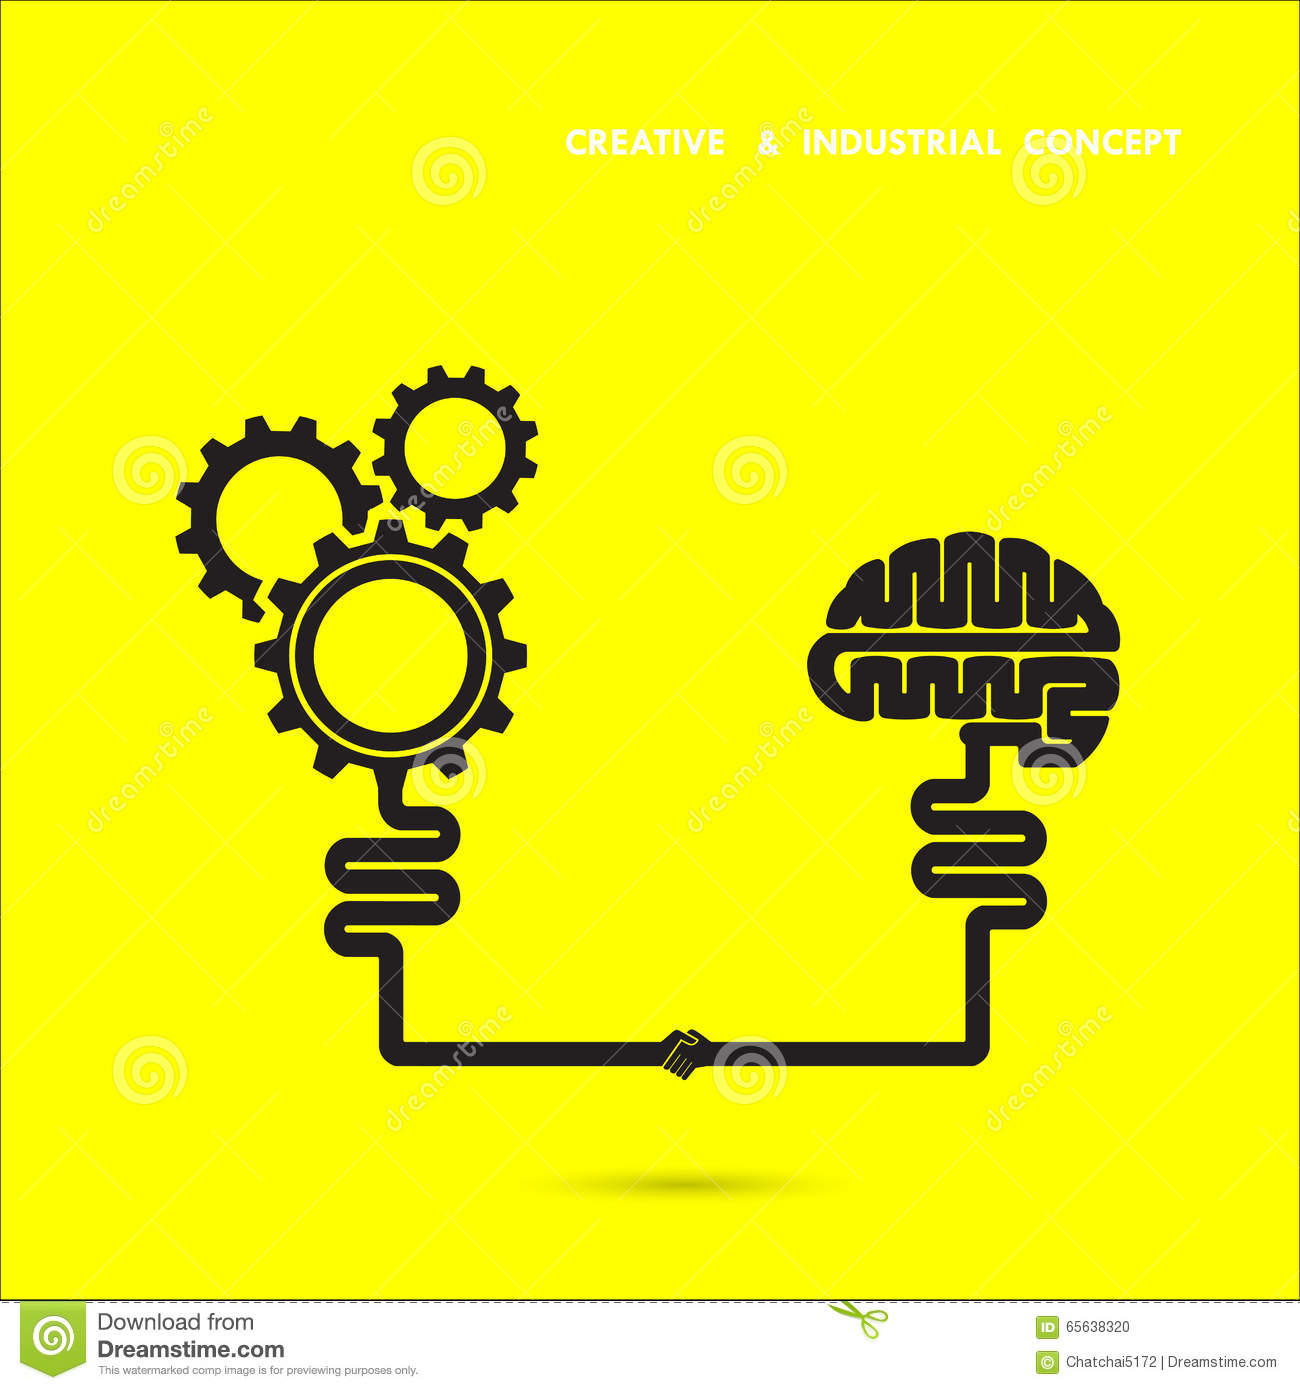 Creative brain and industrial concept brain and gear icon for Industrial design innovation